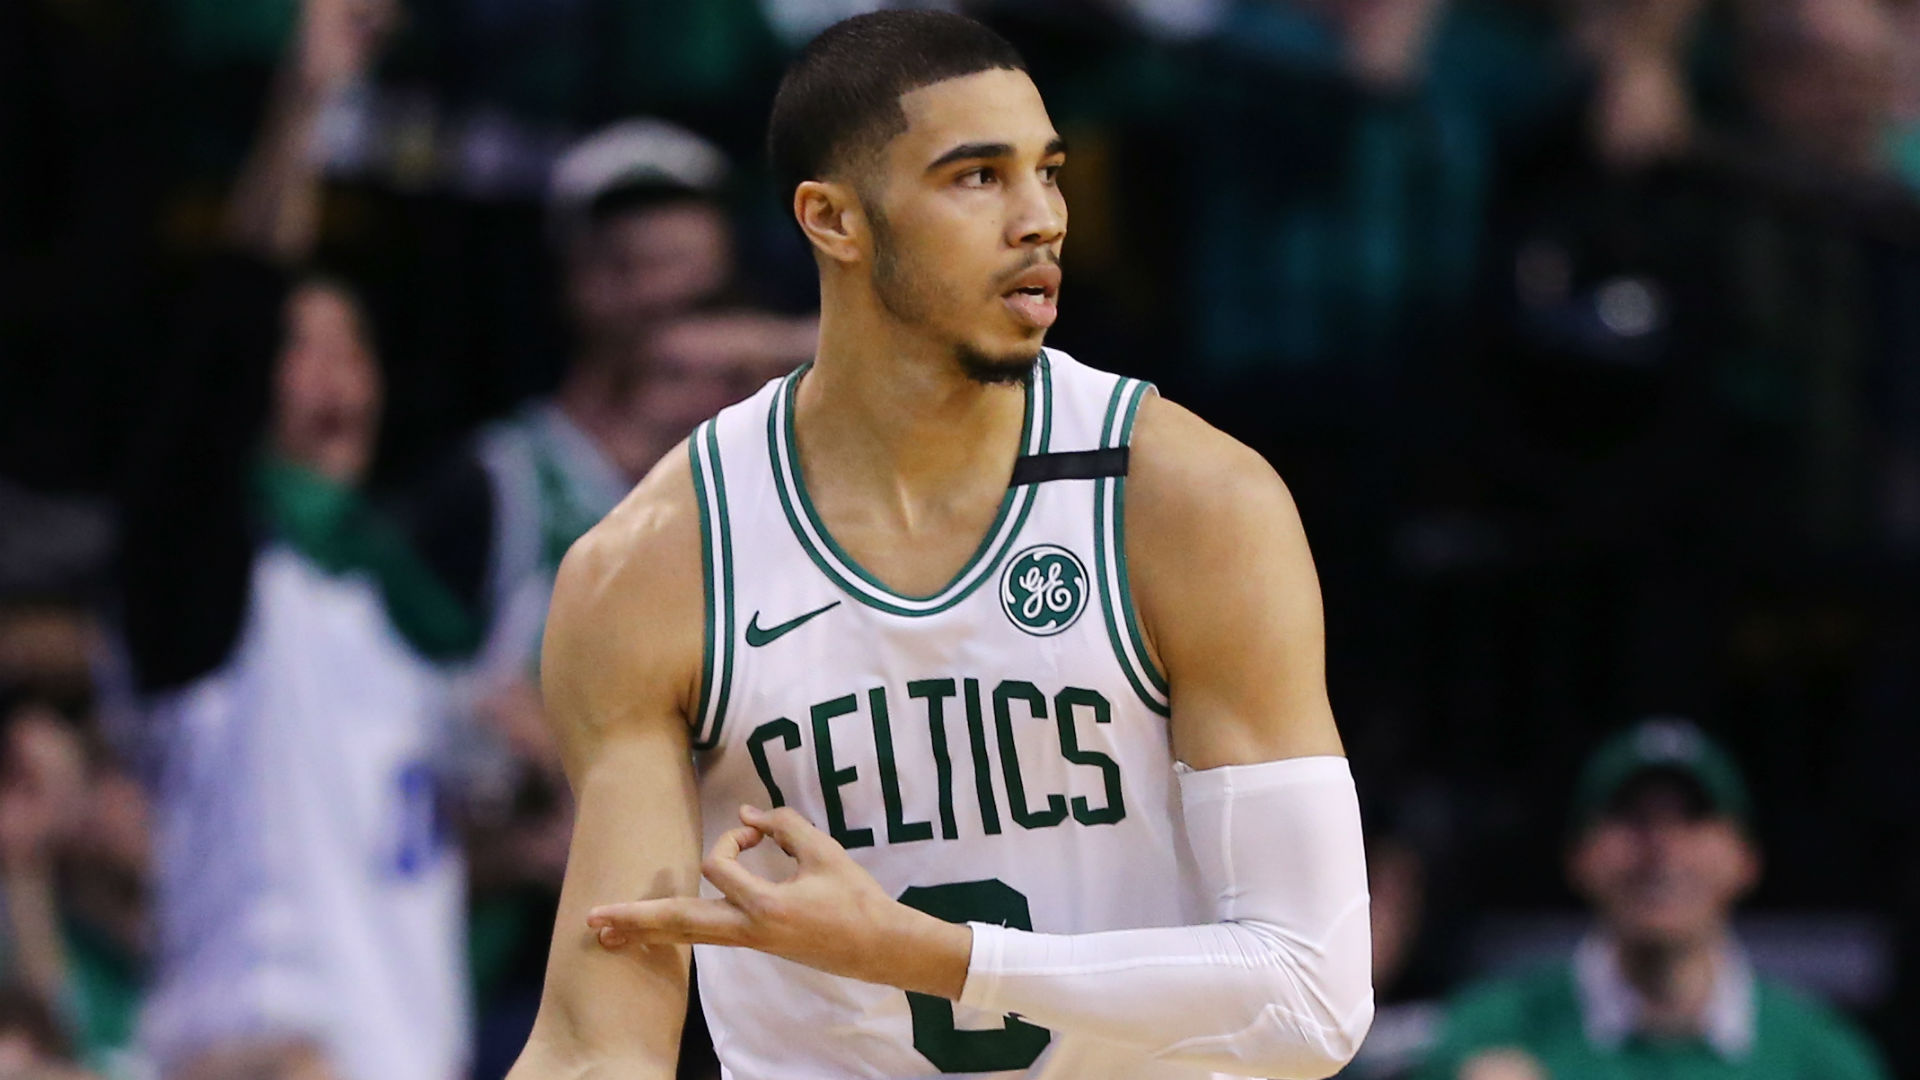 Celtics too good for 76ers in NBA